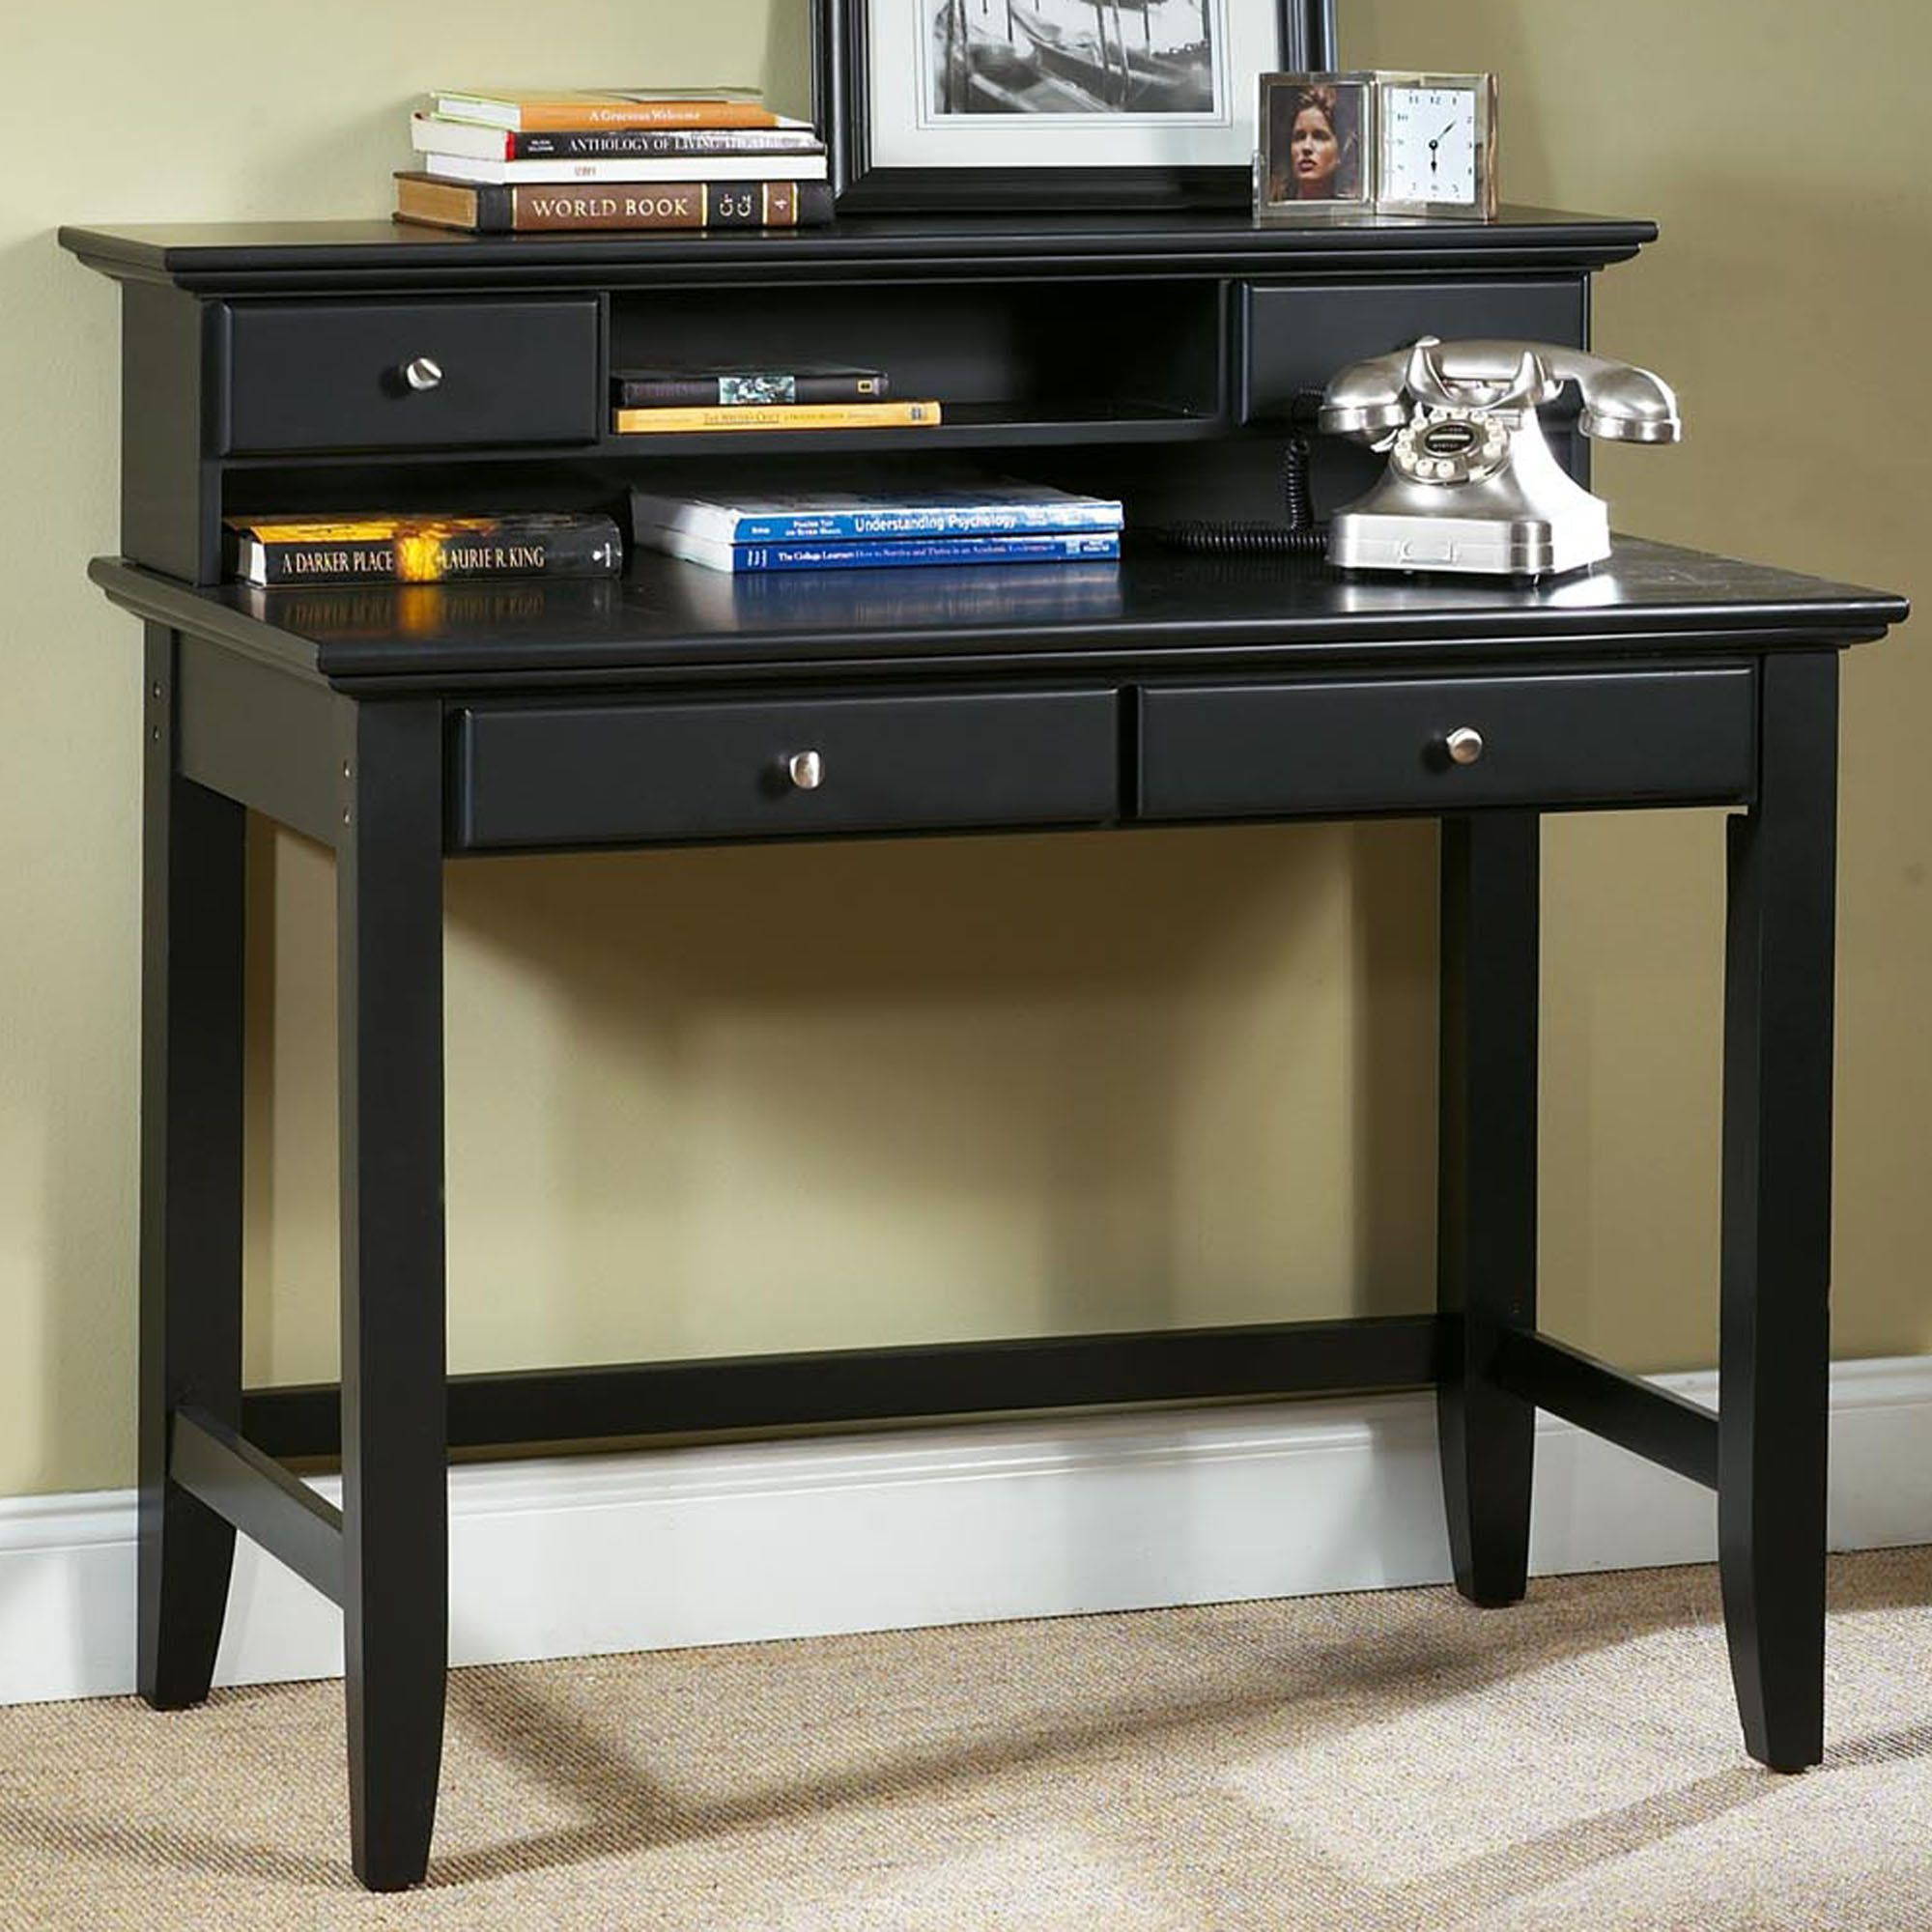 99 Small Black Writing Desk Office Furniture For Home Check More At Http Www Sewcraftyjenn Com Small Blac Desks For Small Spaces Home Styles Student Desks